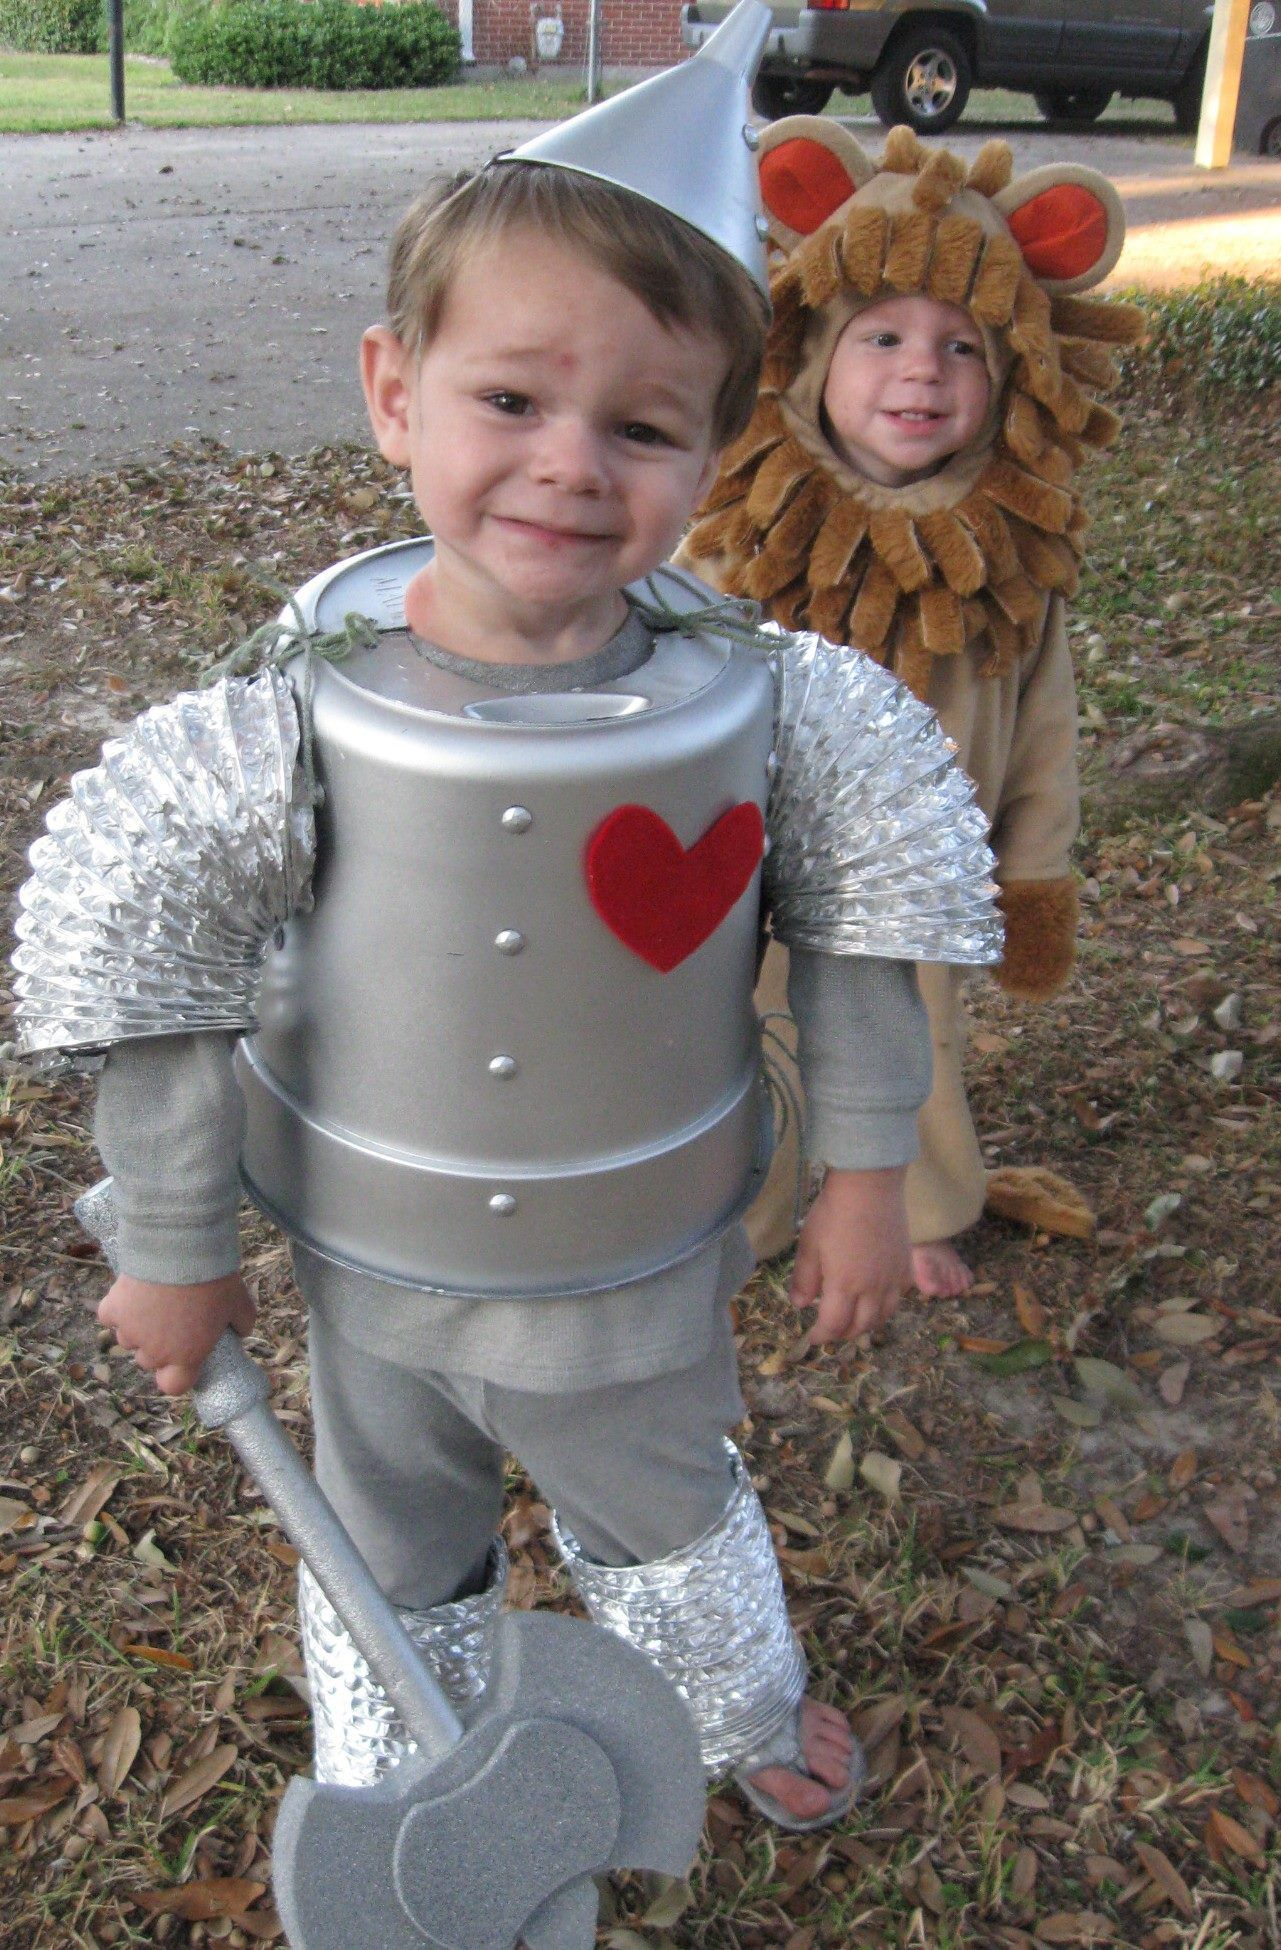 Over 40 Of The Best Homemade Halloween Costumes For Babies Kids Homemade Halloween Costumes Halloween Costumes For Kids Baby Halloween Costumes